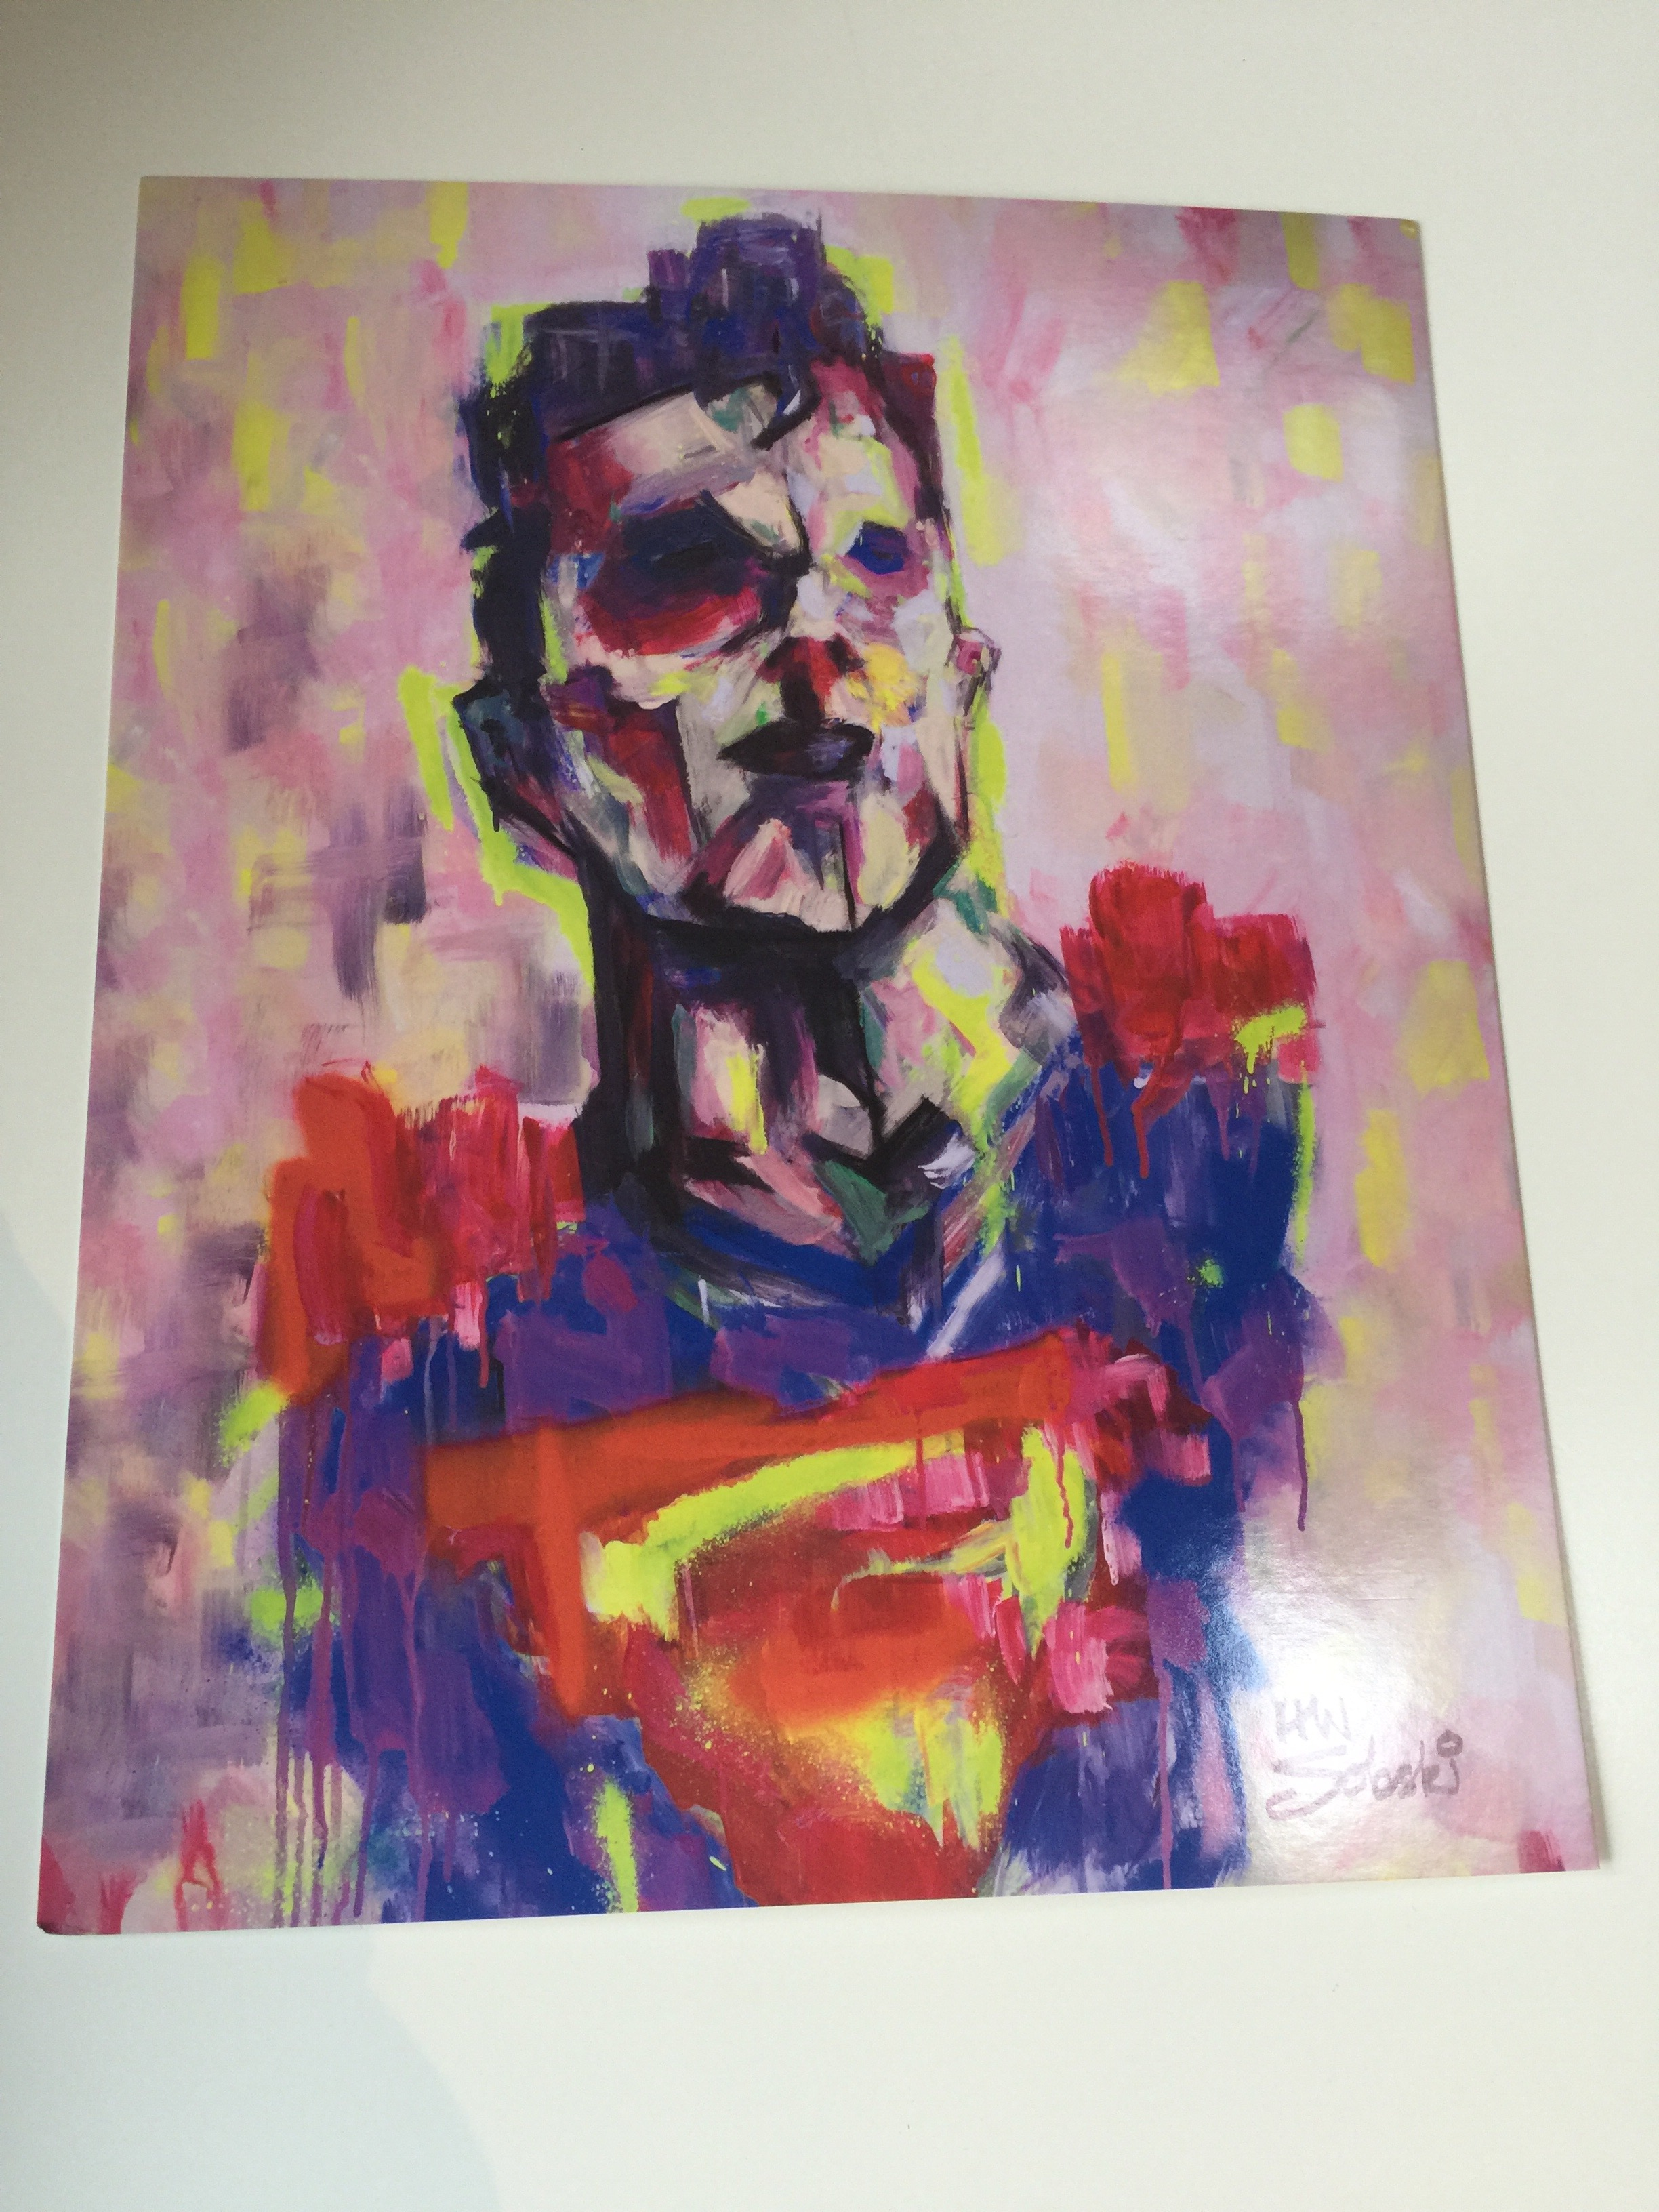 8X10 Han Soloski Superman 'Lone Survivor' print